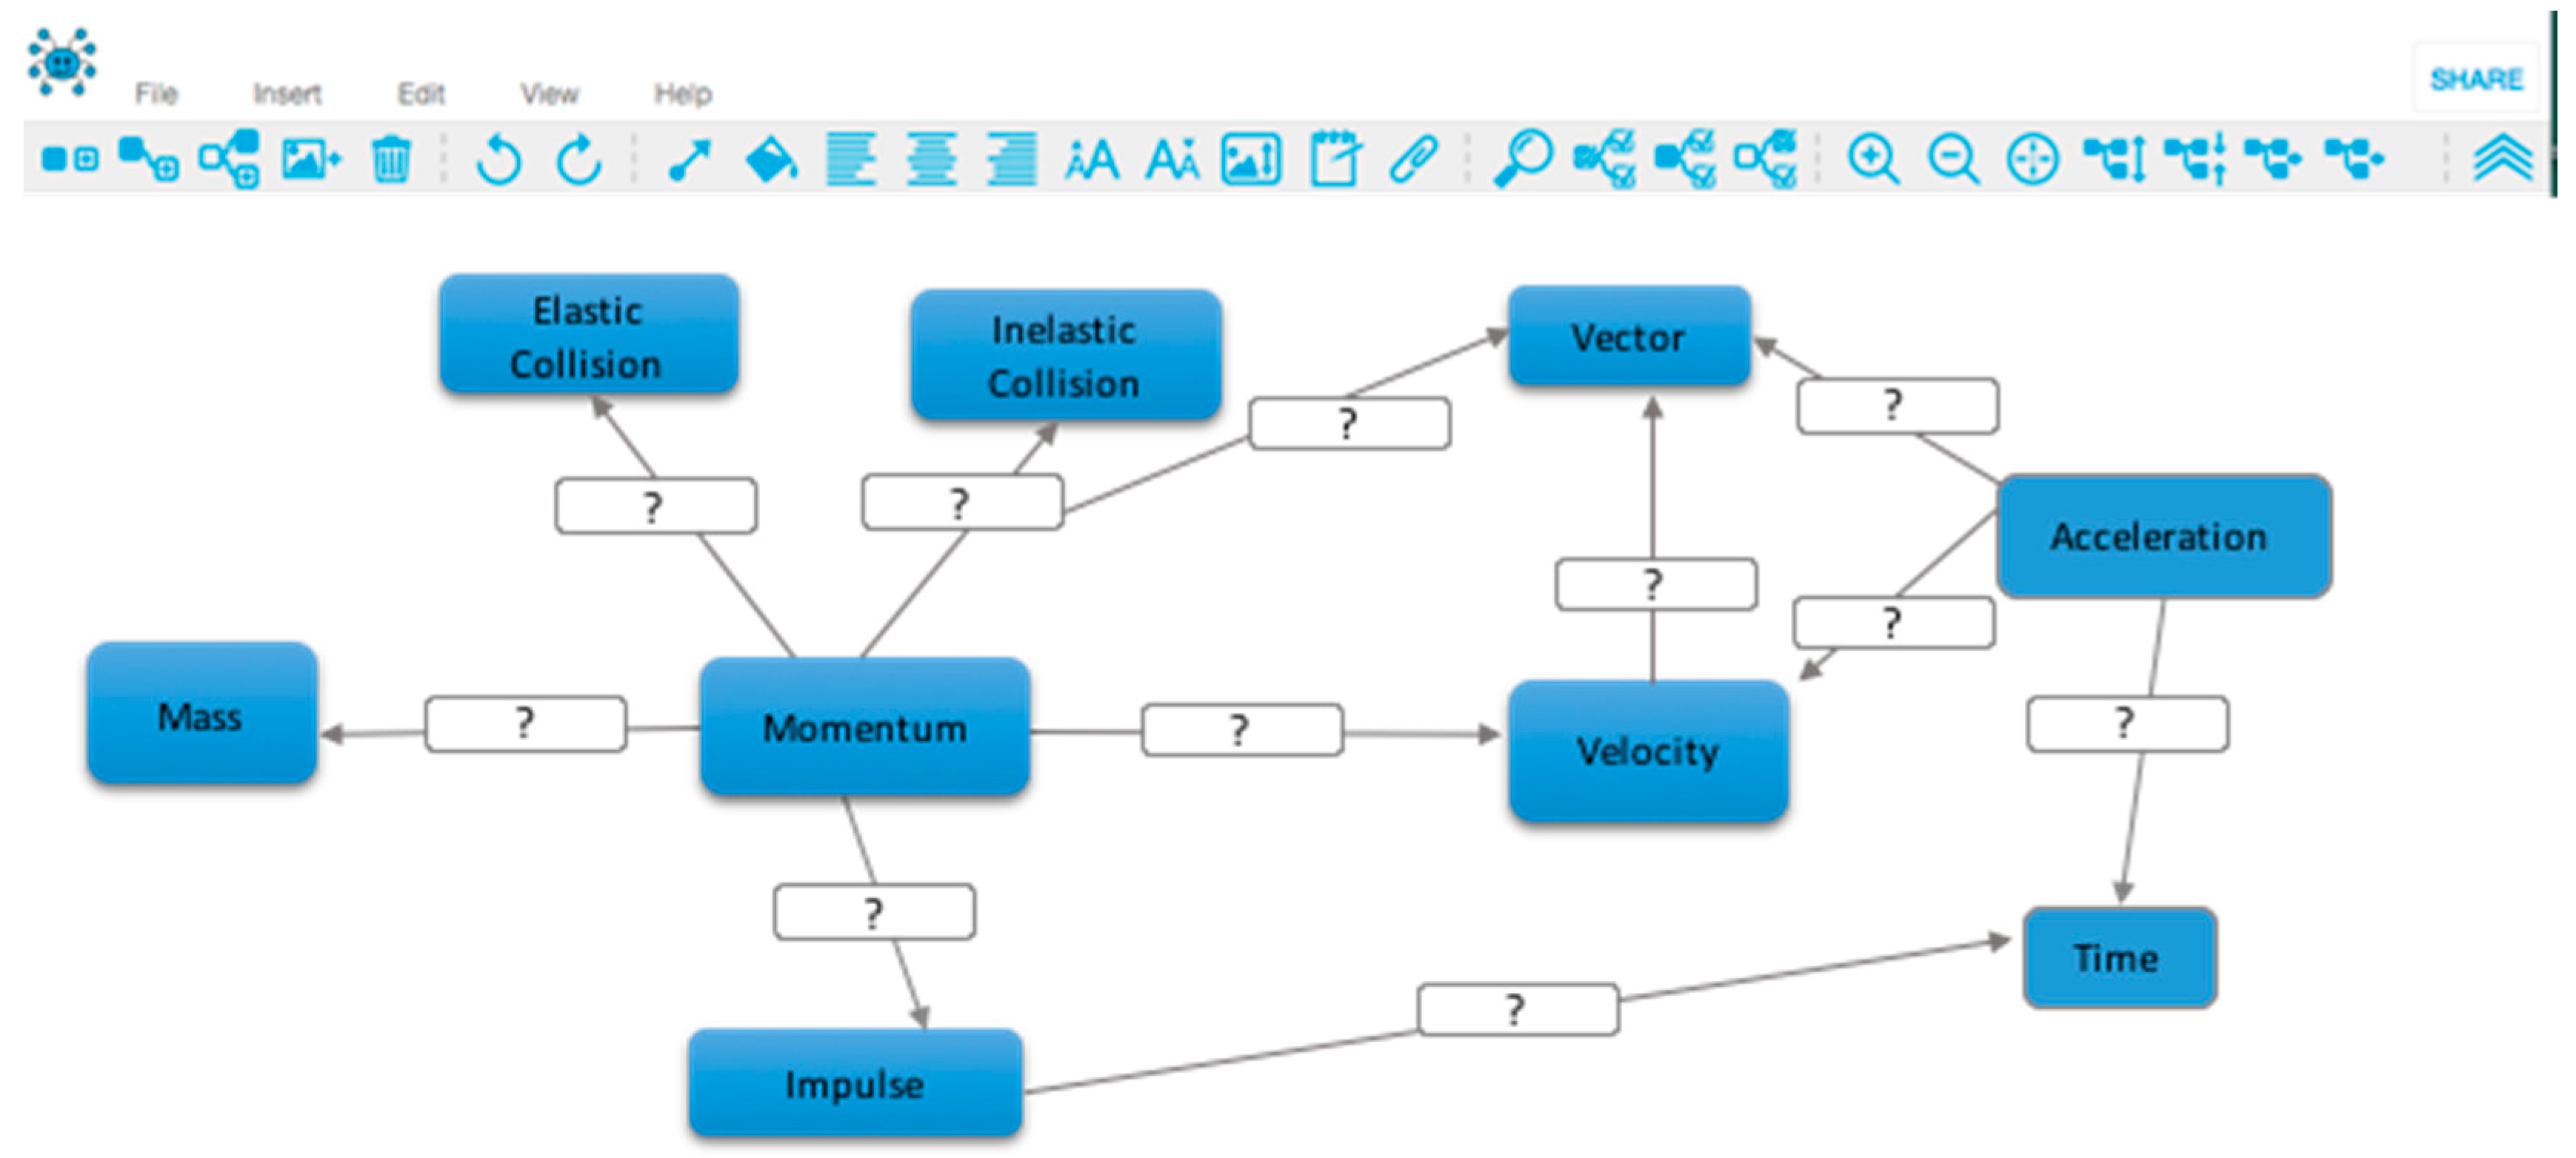 Sustainability Free Full Text Computer Based Concept Mapping As